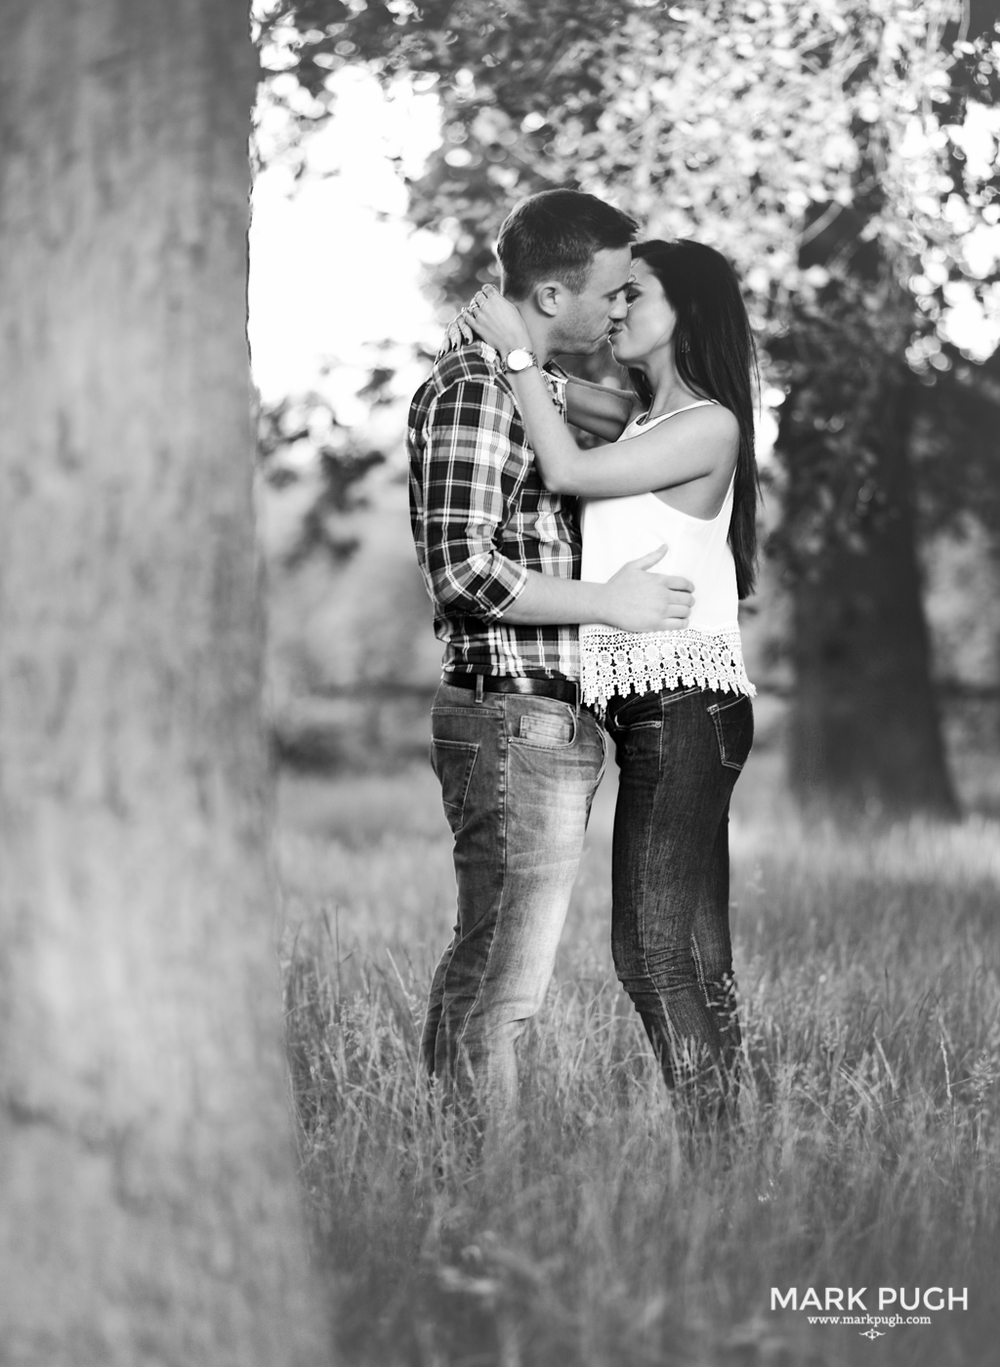 056  - Jacqueline and David - preWED Photography session at Kelham House Country Manor Hotel by Mark Pugh www.markpugh.com -0268.JPG